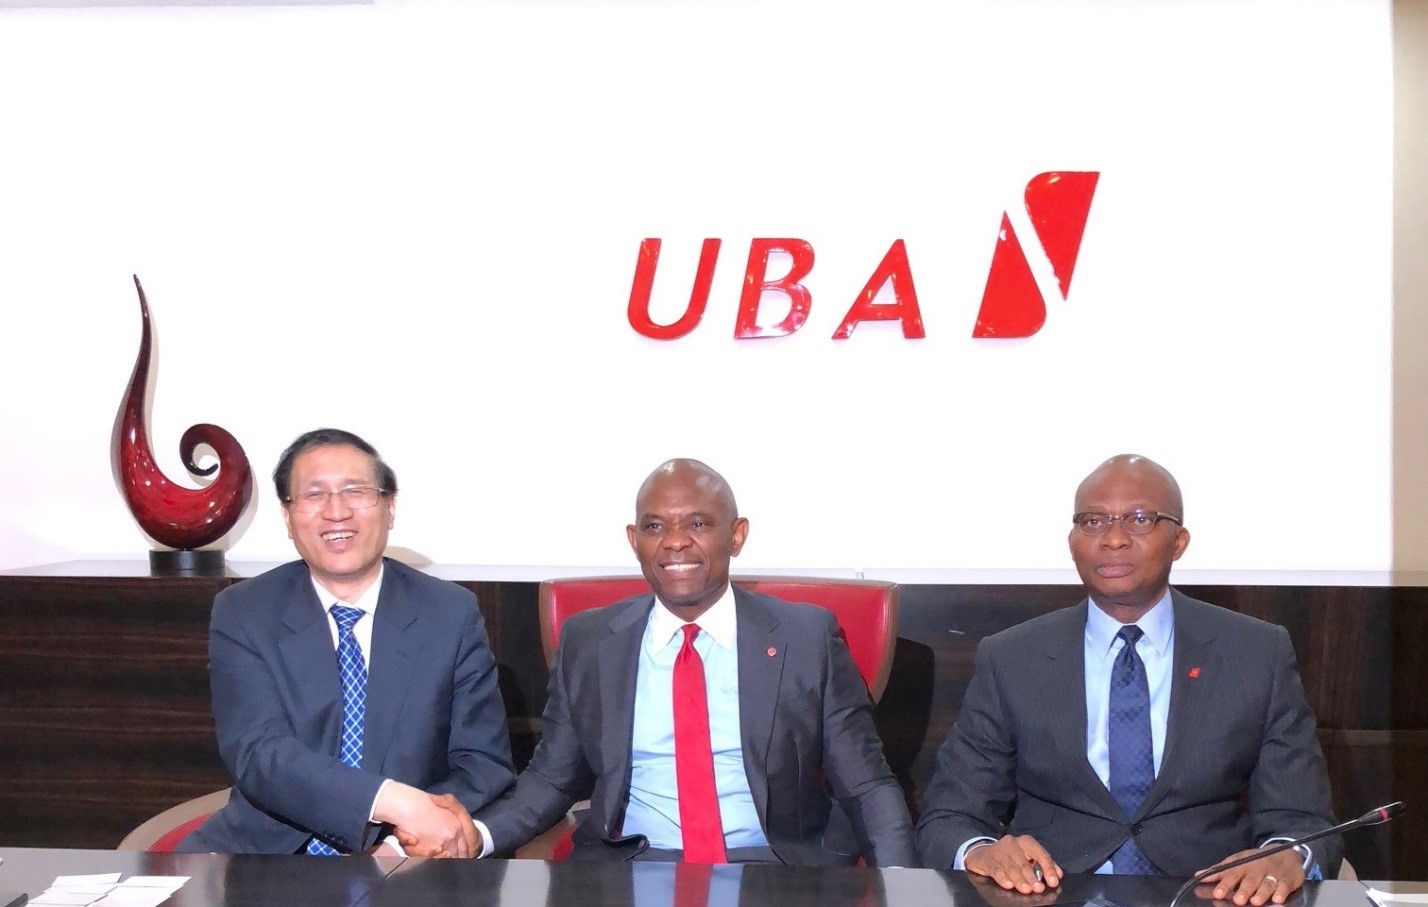 China Development Bank, UBA Sign $100 million Loan Deal to Support SMEs in Africa – Brandessence ...